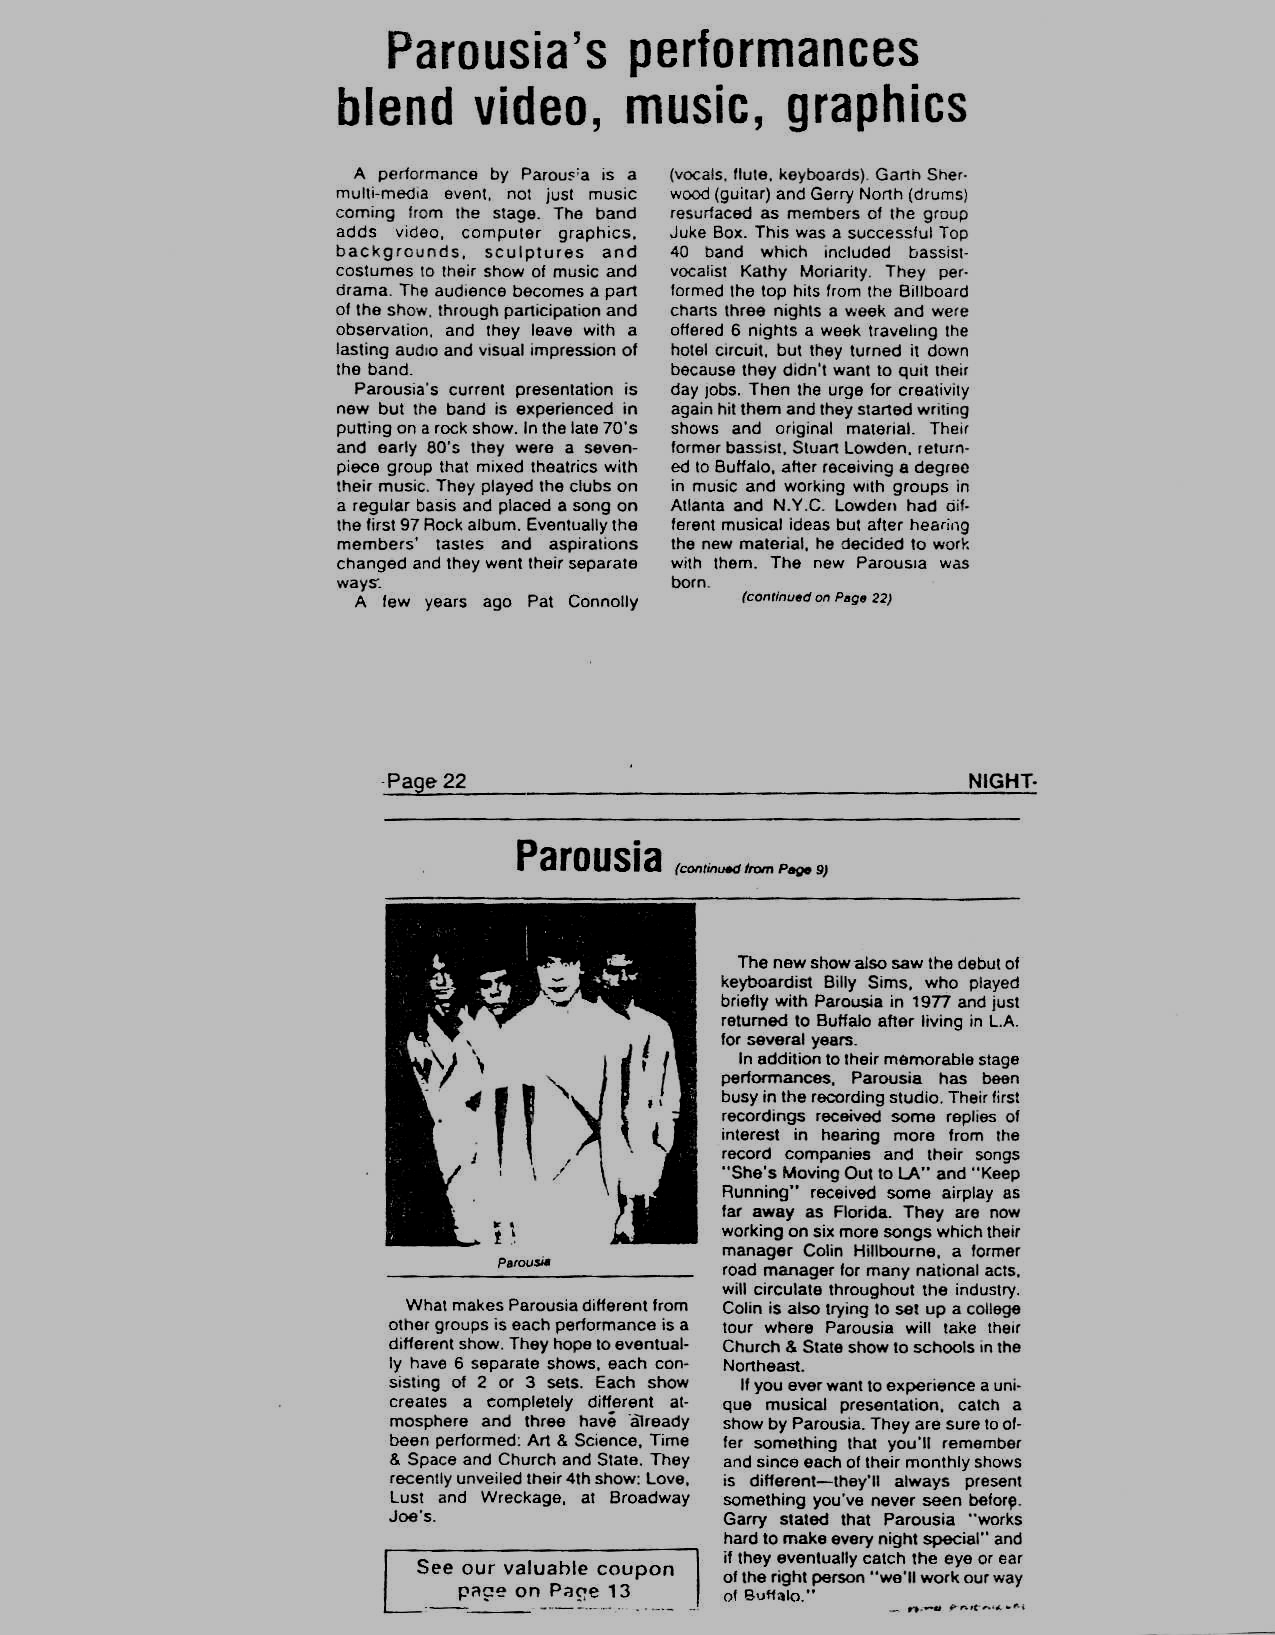 Buffalo Nightlife show review - photocopy -complete 03.24.86